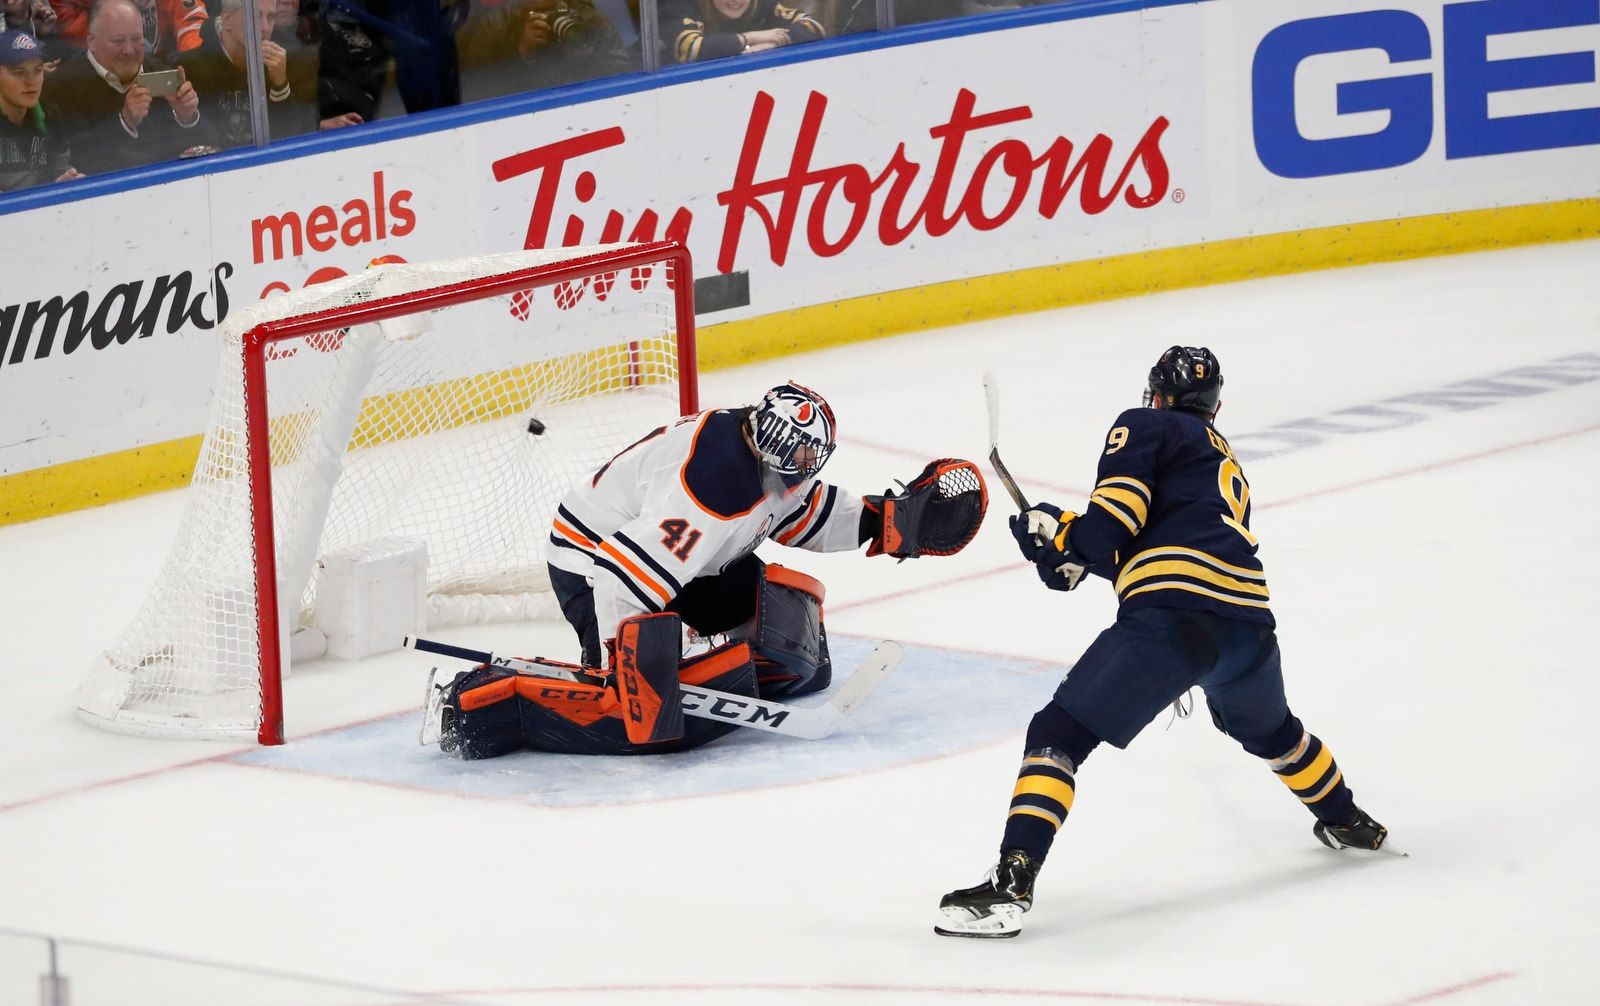 Buffalo Sabres captain Jack Eichel (9) scores on a penalty shot on Edmonton Oilers goalie Mike Smith in overtime to give the Sabres a 3-2 victory.